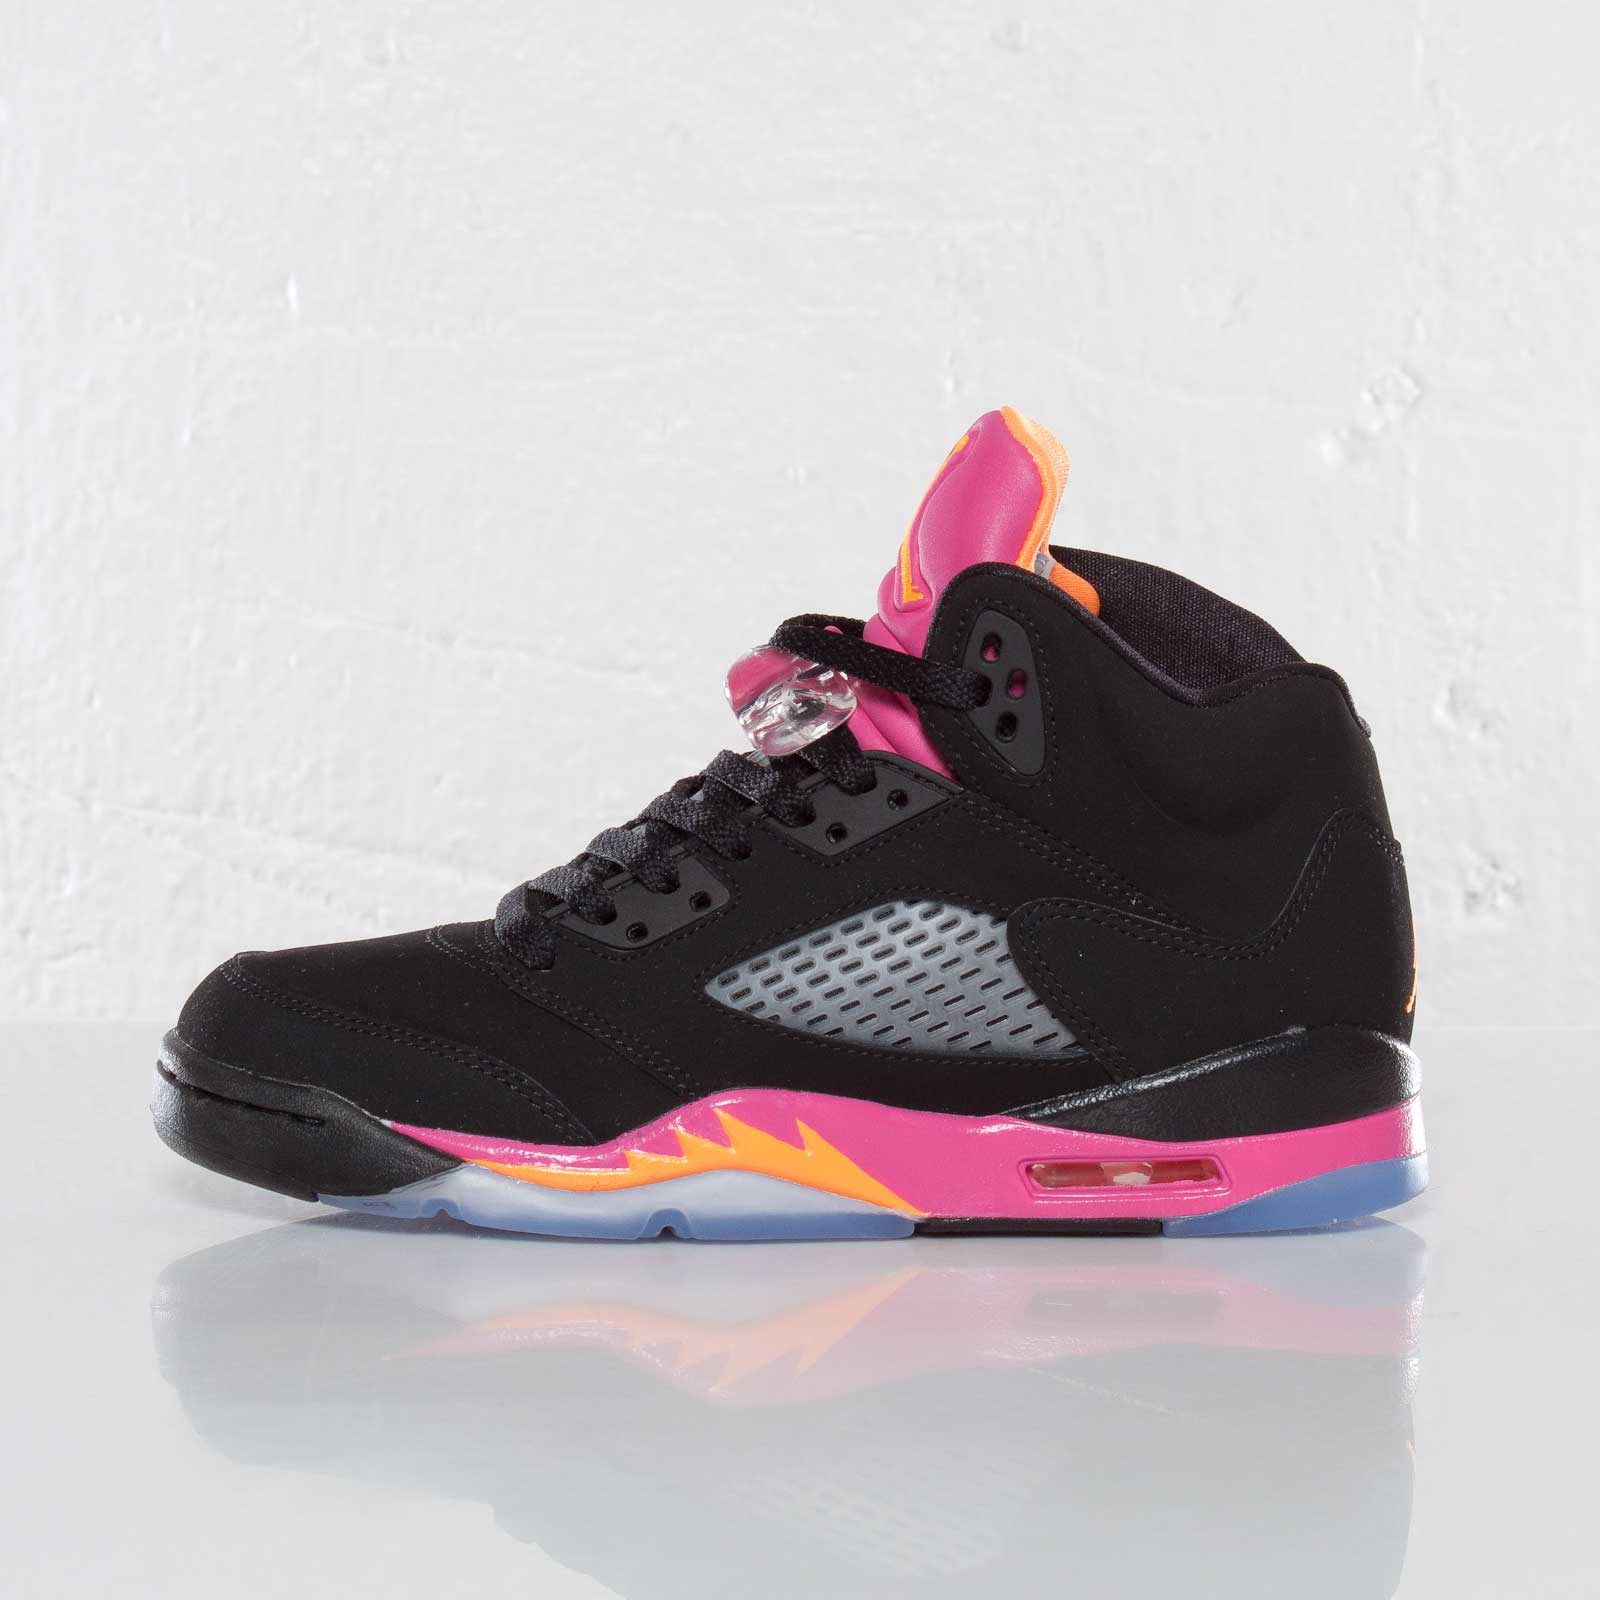 save off dbaac 25d17 Jordan Brand Girls Air Jordan 5 Retro (GS) - 440892-067 - Sneakersnstuff    sneakers   streetwear online since 1999